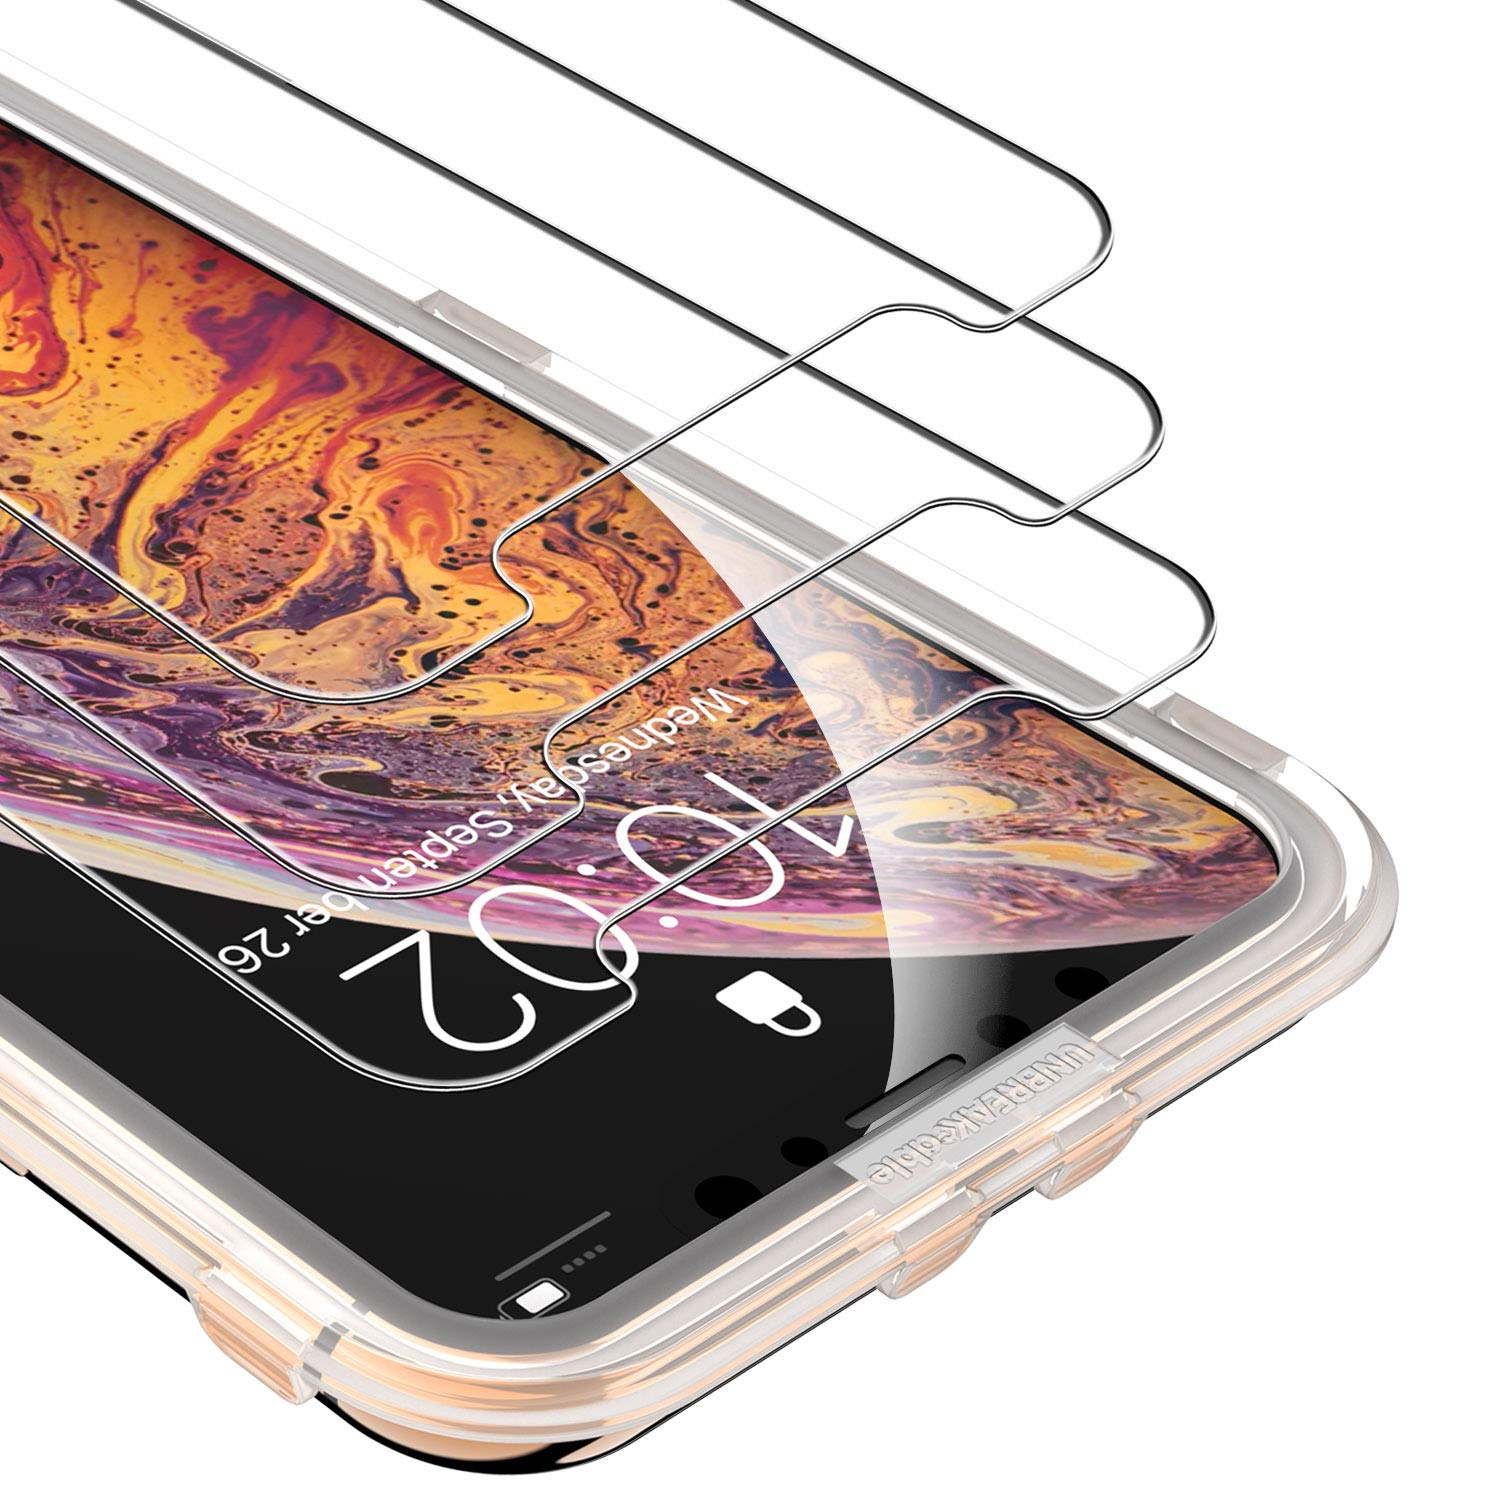 UNBREAKcable Screen Protector for iPhone Xs MAX [3-Pack] - 9H Hardness Tempered Glass for iPhone Xs MAX, Bubble-Free, Shatter-Proof, Free Installation Frame, Case-Friendly, 3D Touch Support by UNBREAKcable